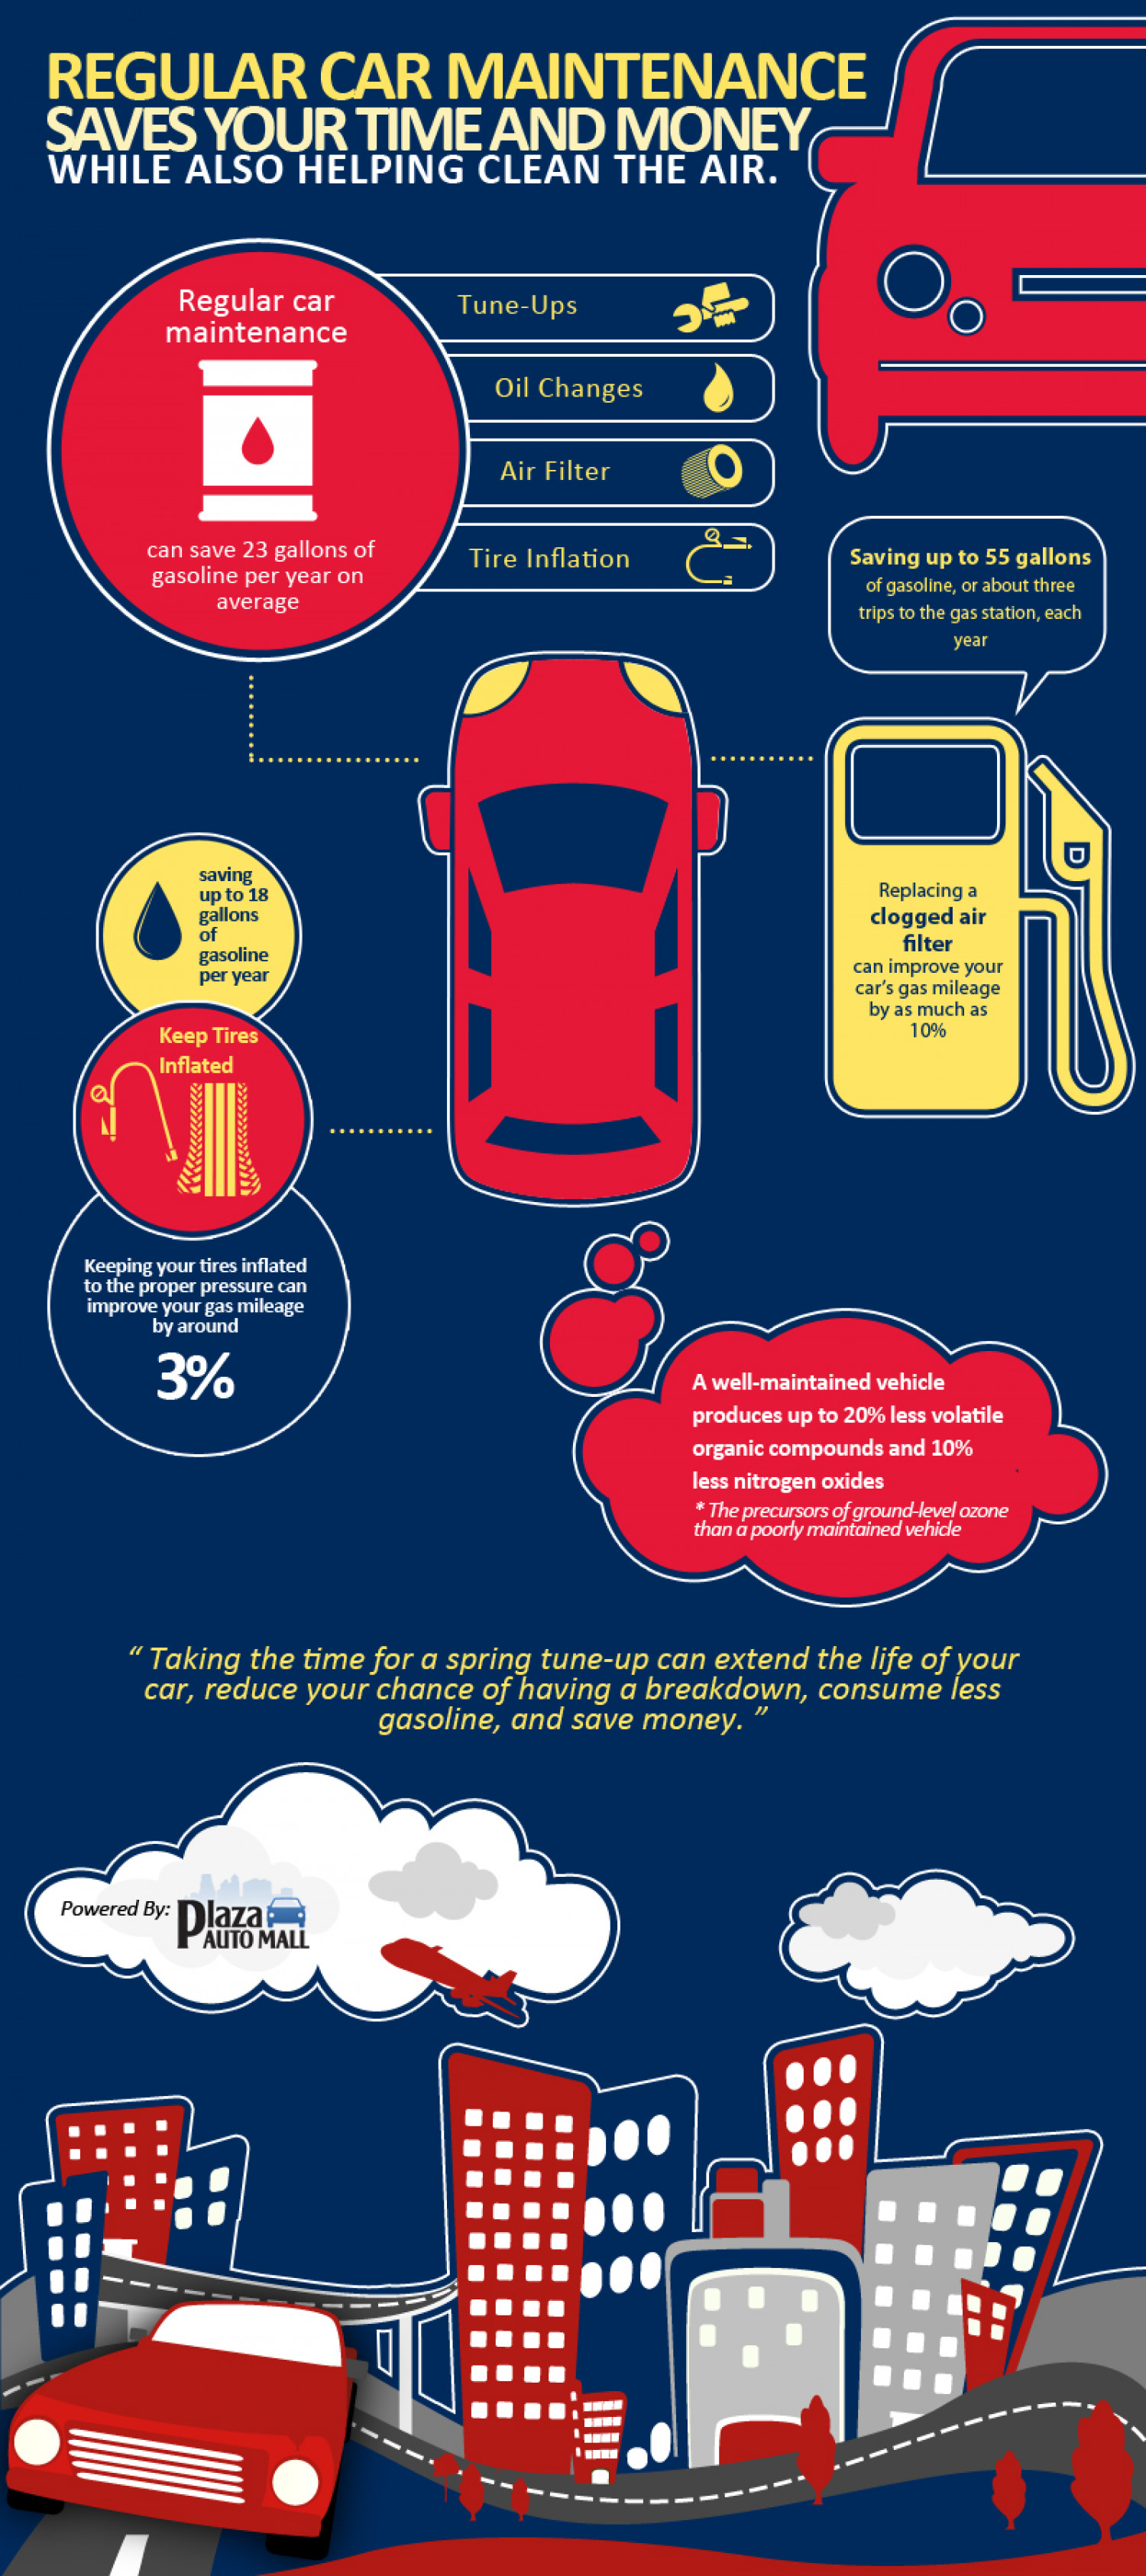 Plaza Auto Mall: Save Time and Money Infographic